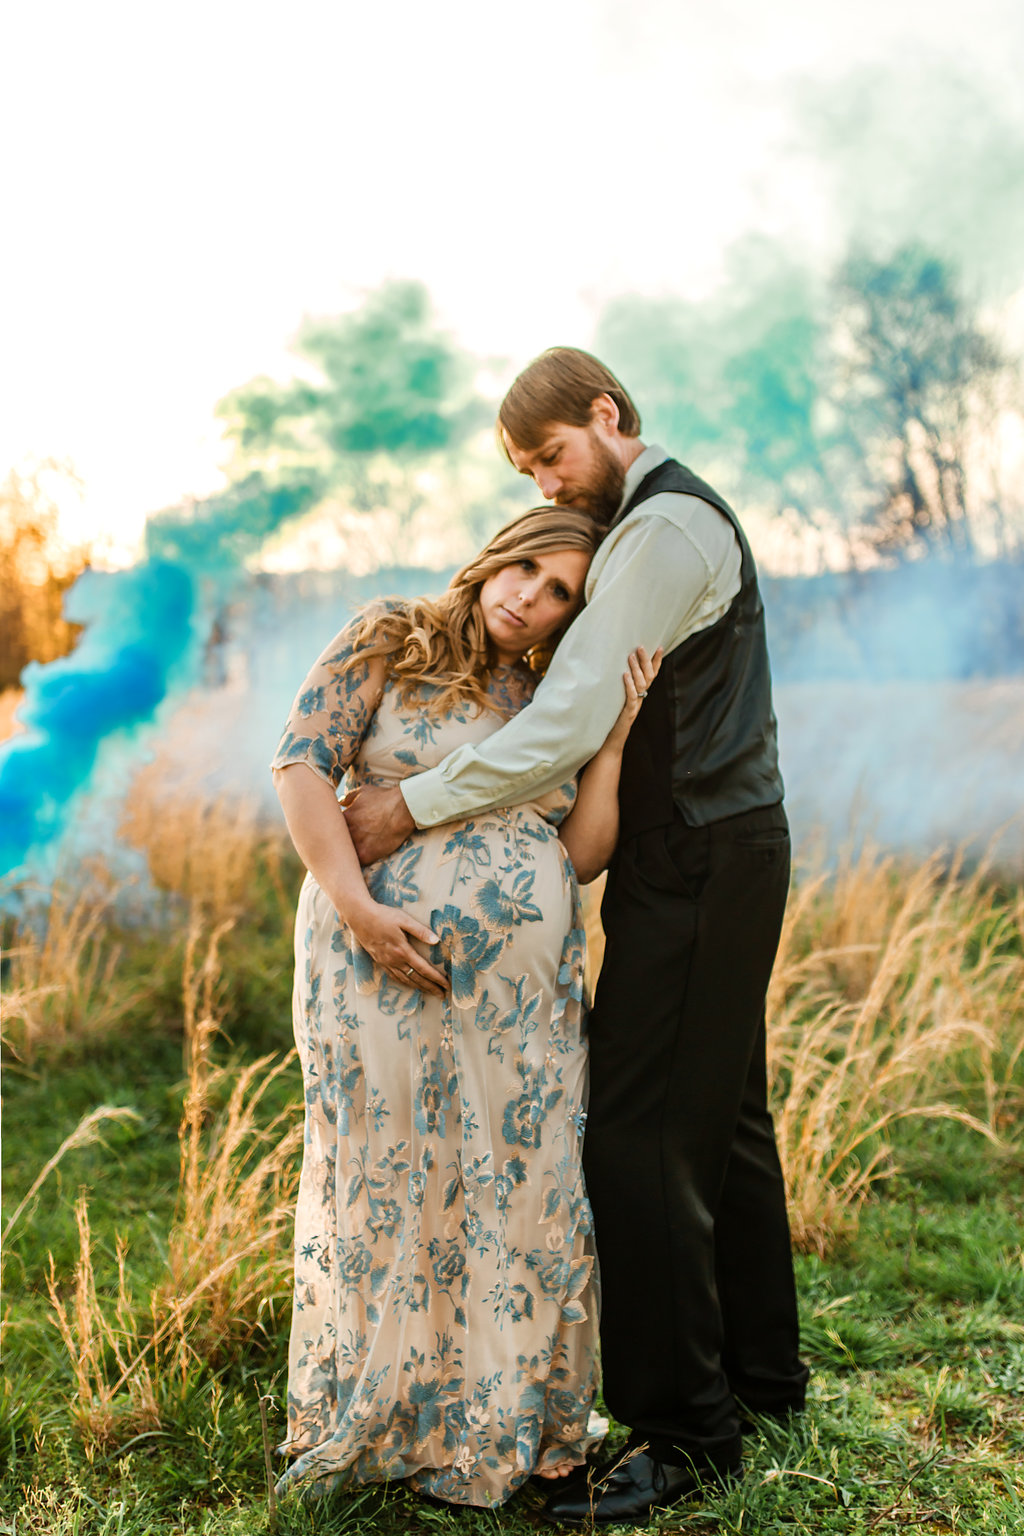 Franklin-Tennessee-Maternity-Styled-Floral-Dress-Field-Golden-Couple-Gender-Reveal-Smoke-Grenade